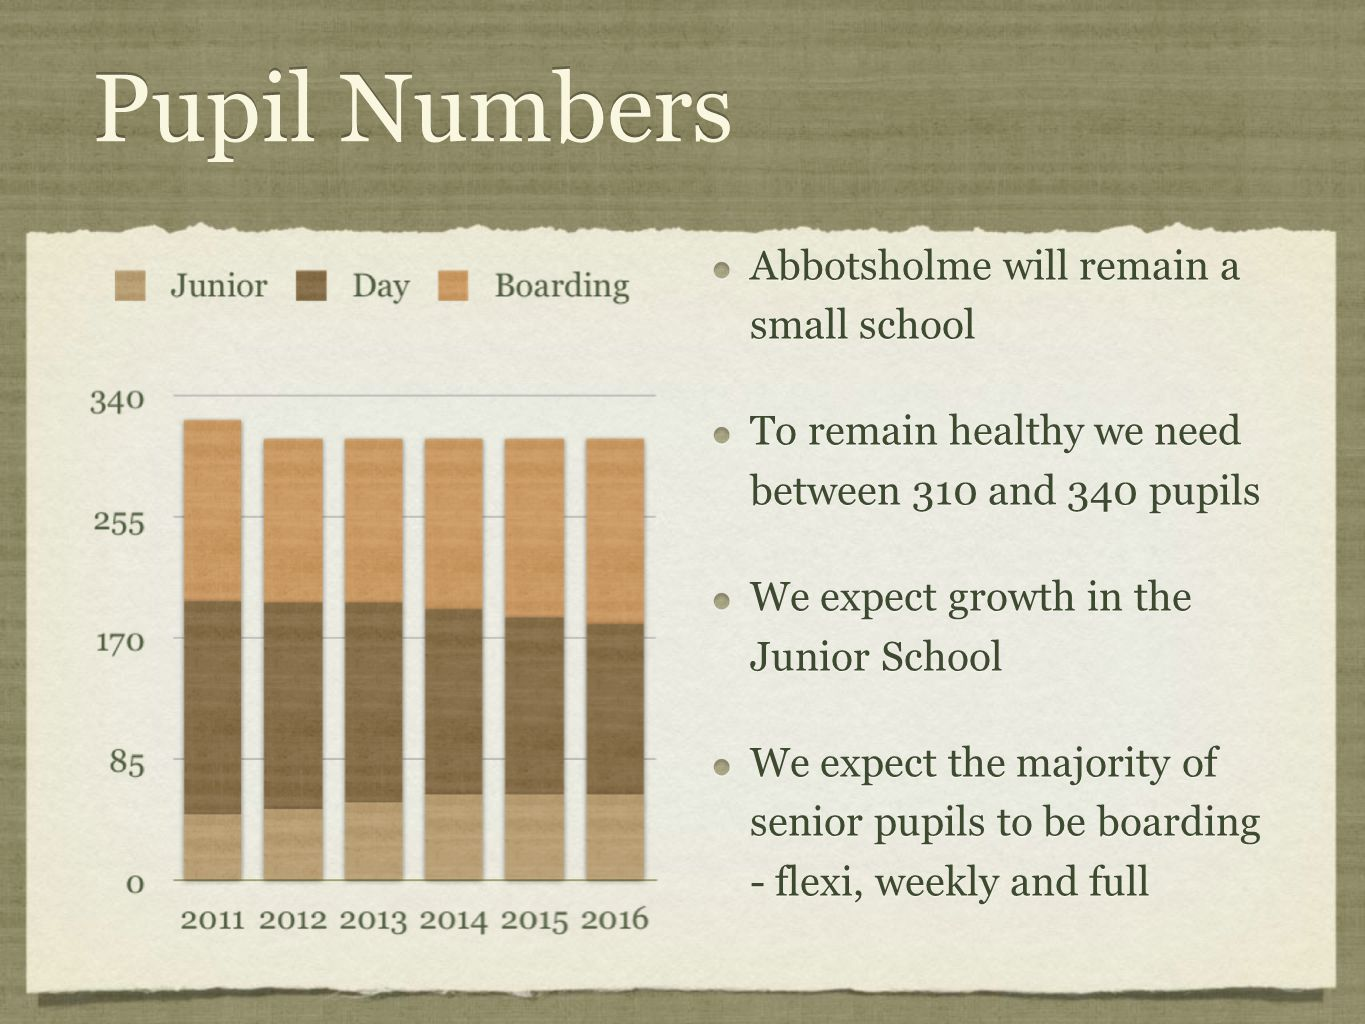 Pupil Numbers Abbotsholme will remain a small school To remain healthy we need between 310 and 340 pupils We expect growth in the Junior School We expect the majority of senior pupils to be boarding - flexi, weekly and full Abbotsholme will remain a small school To remain healthy we need between 310 and 340 pupils We expect growth in the Junior School We expect the majority of senior pupils to be boarding - flexi, weekly and full